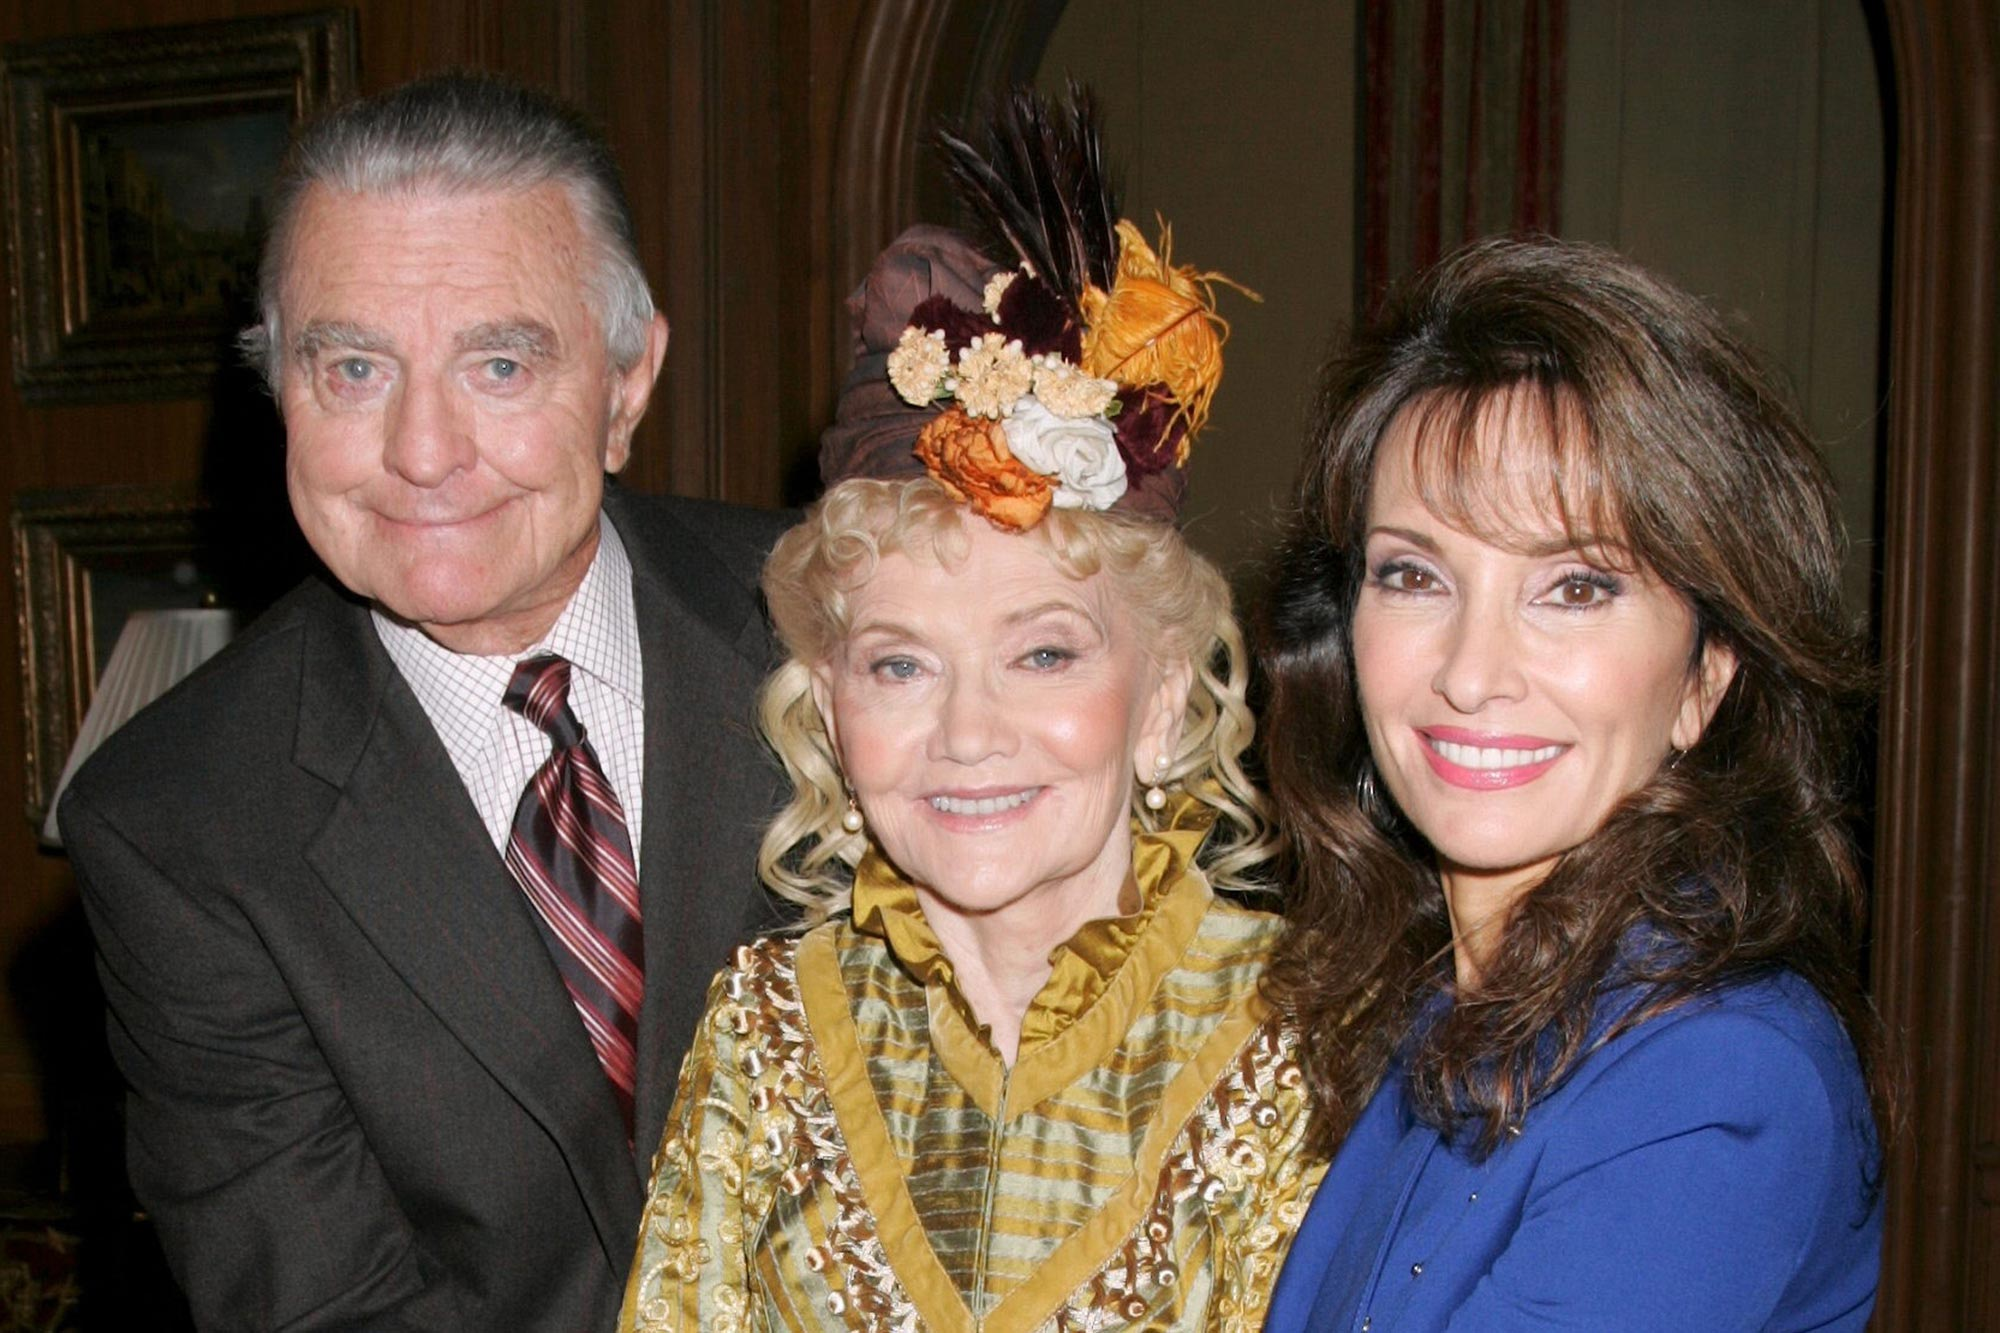 Ray MacDonnell, All My Children star, dies at 93